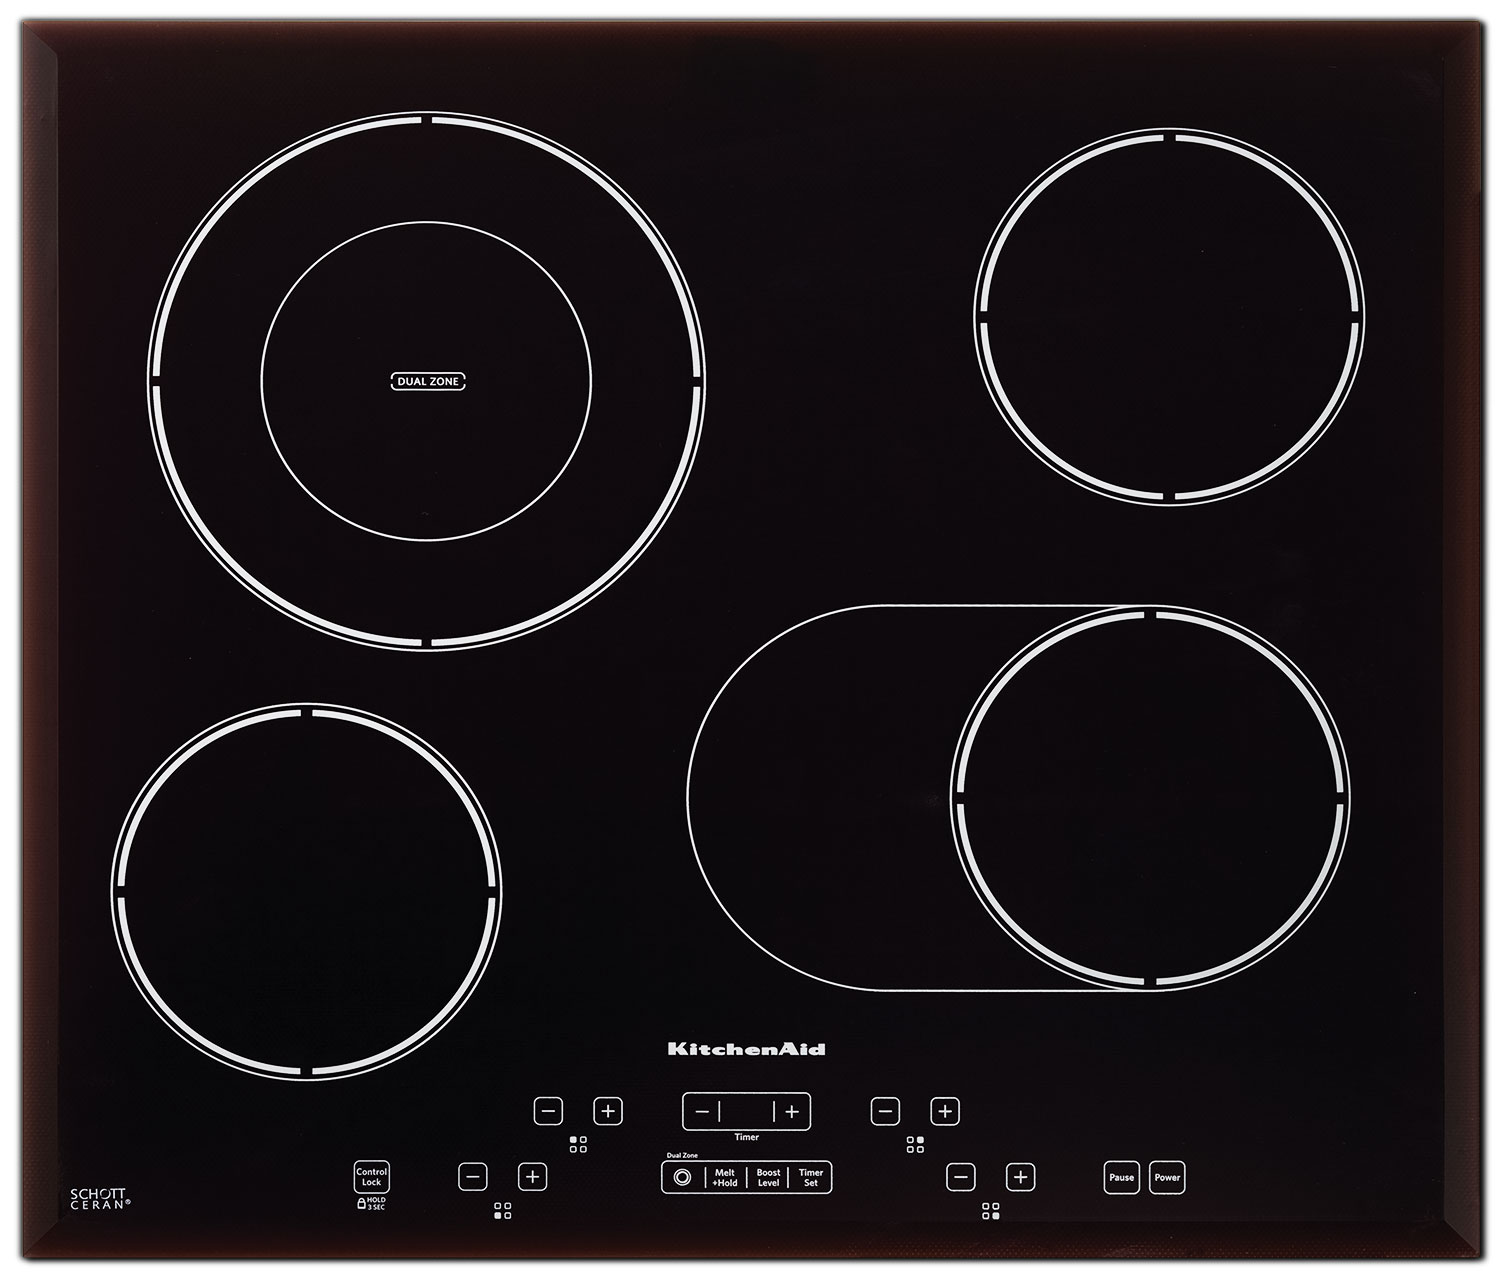 """Cooking Products - KitchenAid Black Stainless Steel 24"""" Electric Cooktop - KECC548BSS"""